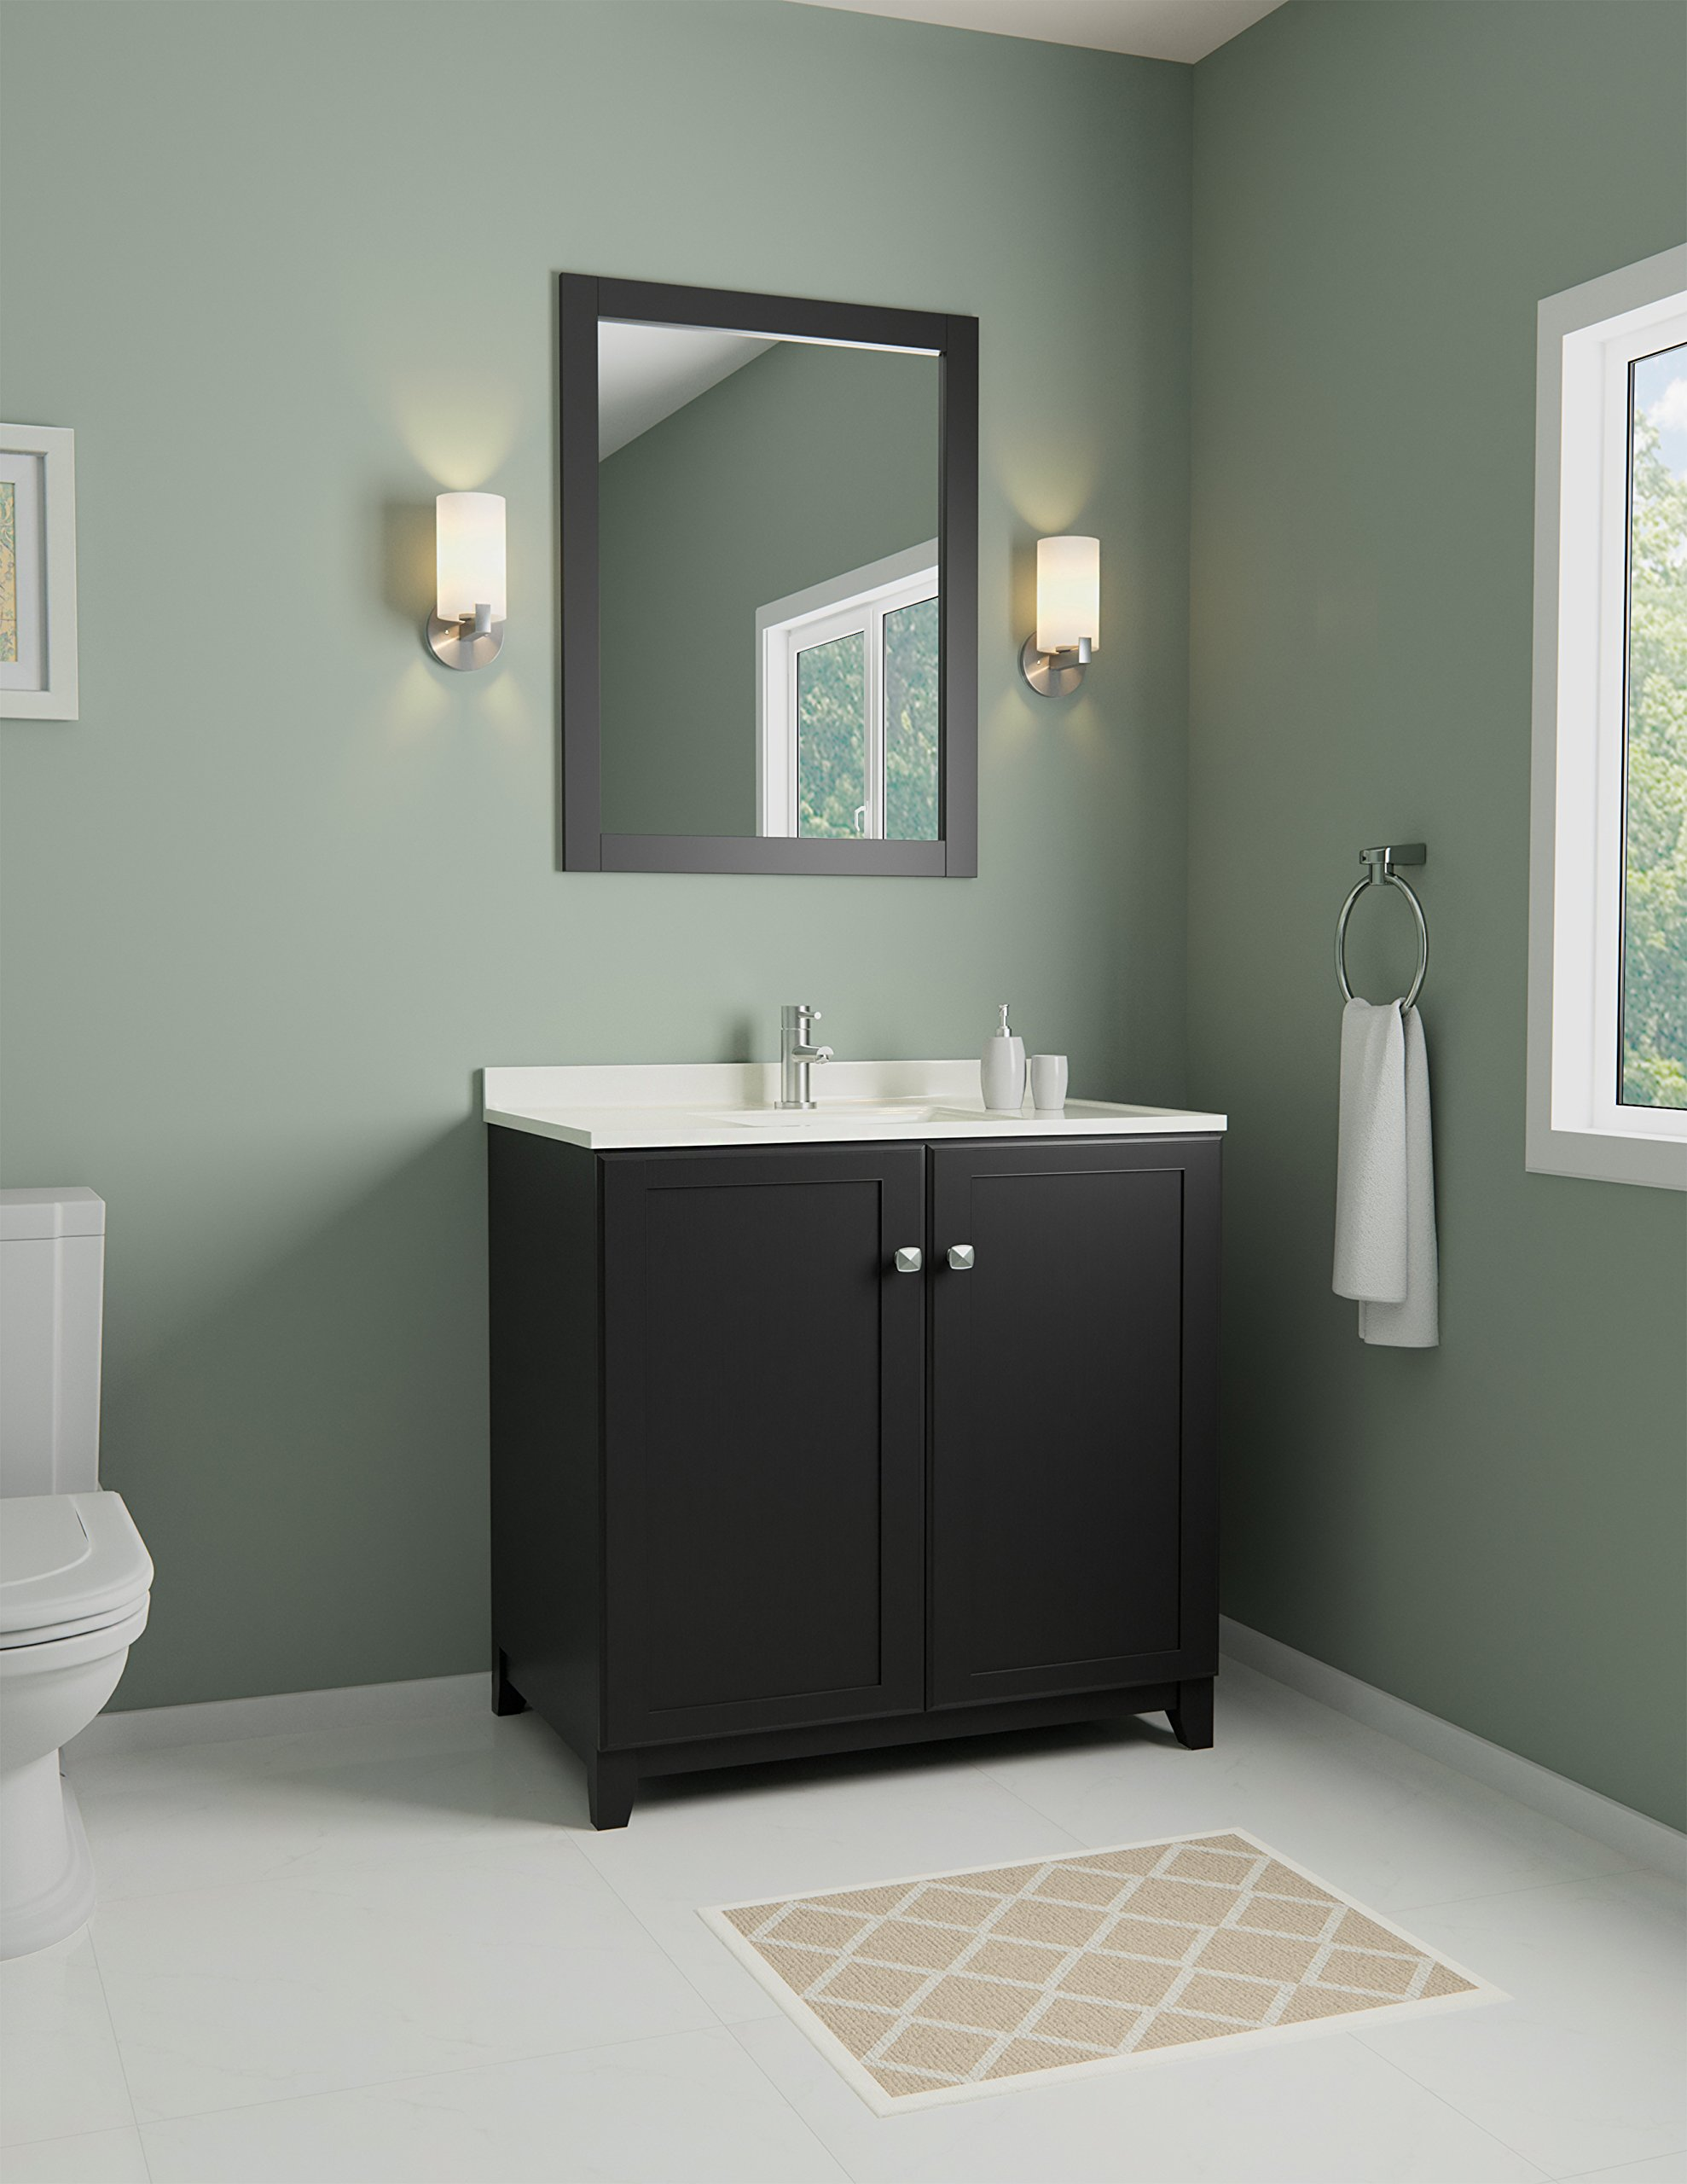 Design House 547000 Shorewood Furniture-Style Vanity Cabinet with 2-Doors, 30-inches by 21-inches, Espresso - 2-door vanity cabinet provides both style and storage space in your bathroom Concealed hinges provide a clean look Dark espresso finish with satin nickel hardware - bathroom-vanities, bathroom-fixtures-hardware, bathroom - 81J1vlqMU2L -